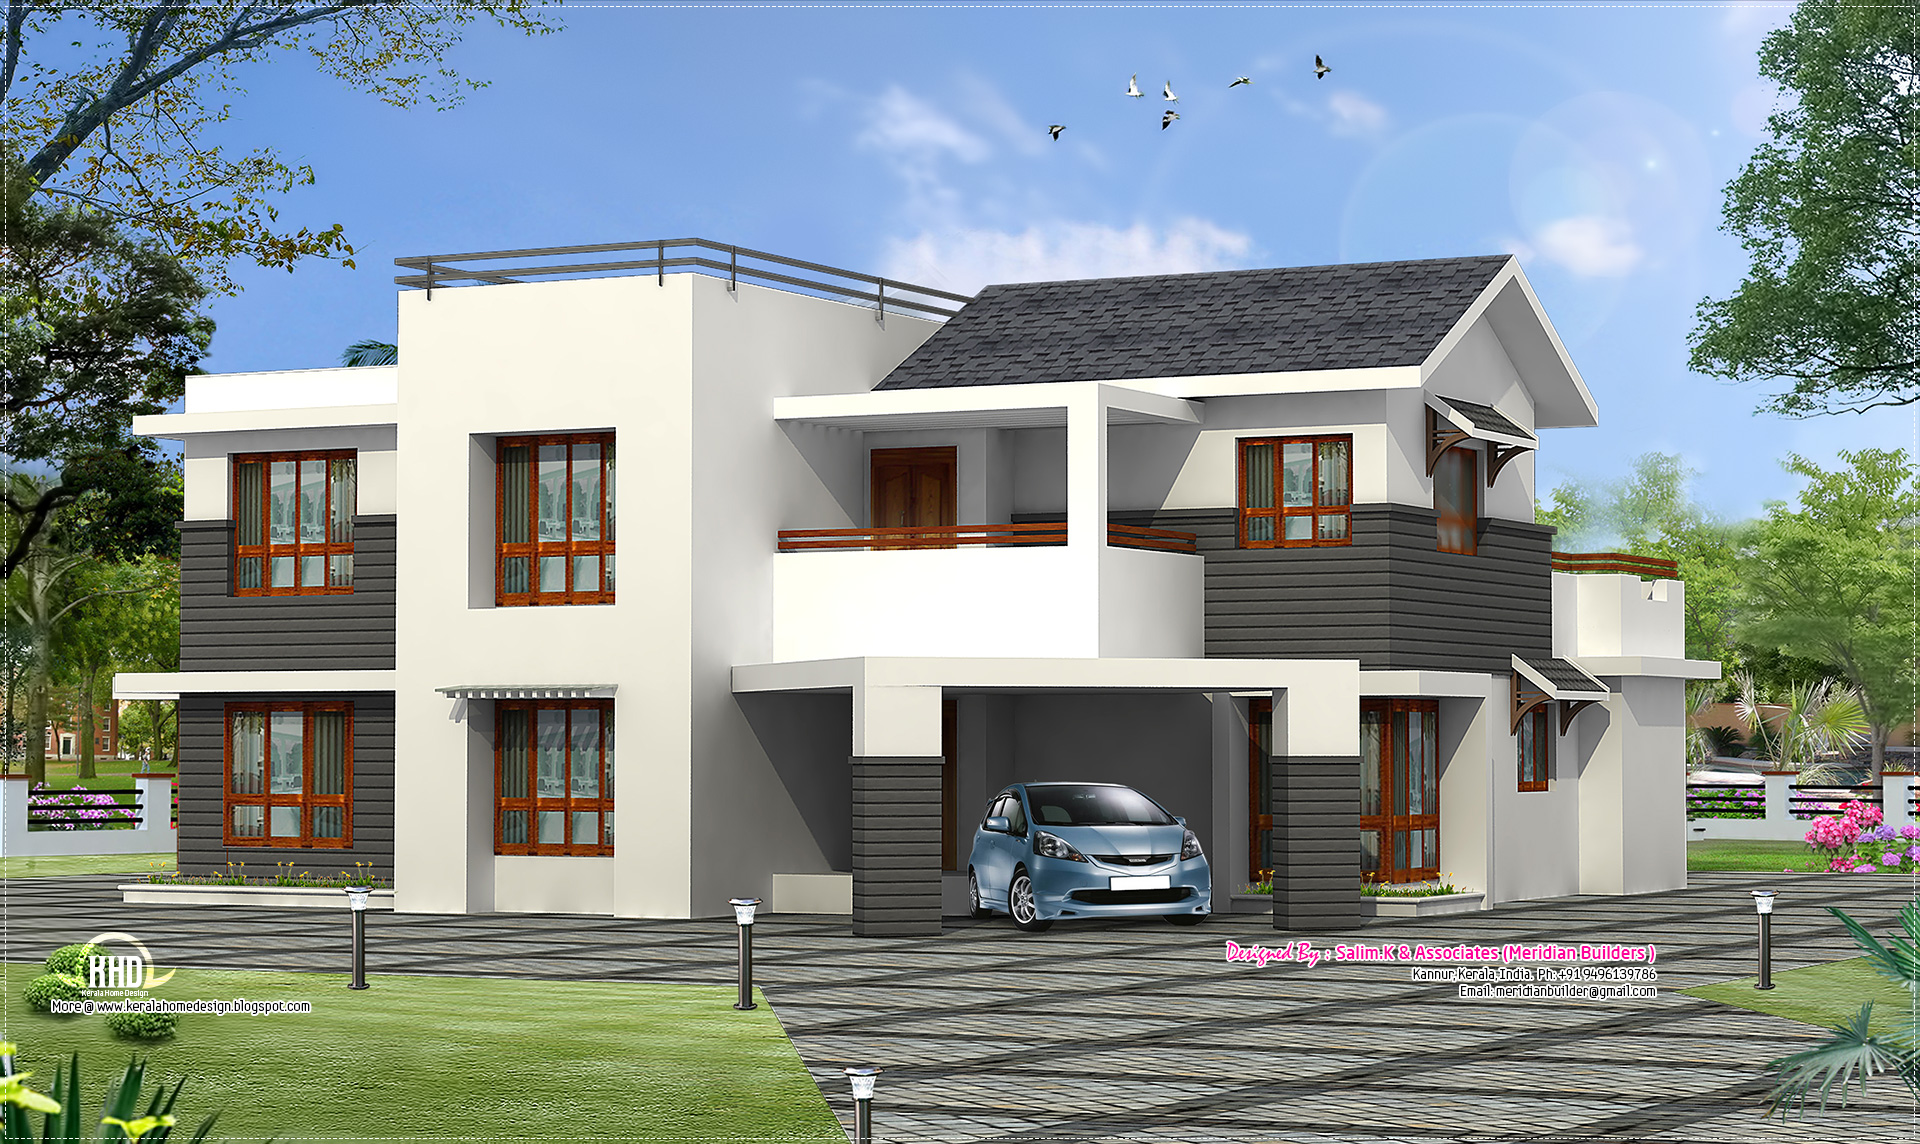 Contemporary villa design from kannur kerala kerala for 3000 sq ft house plans kerala